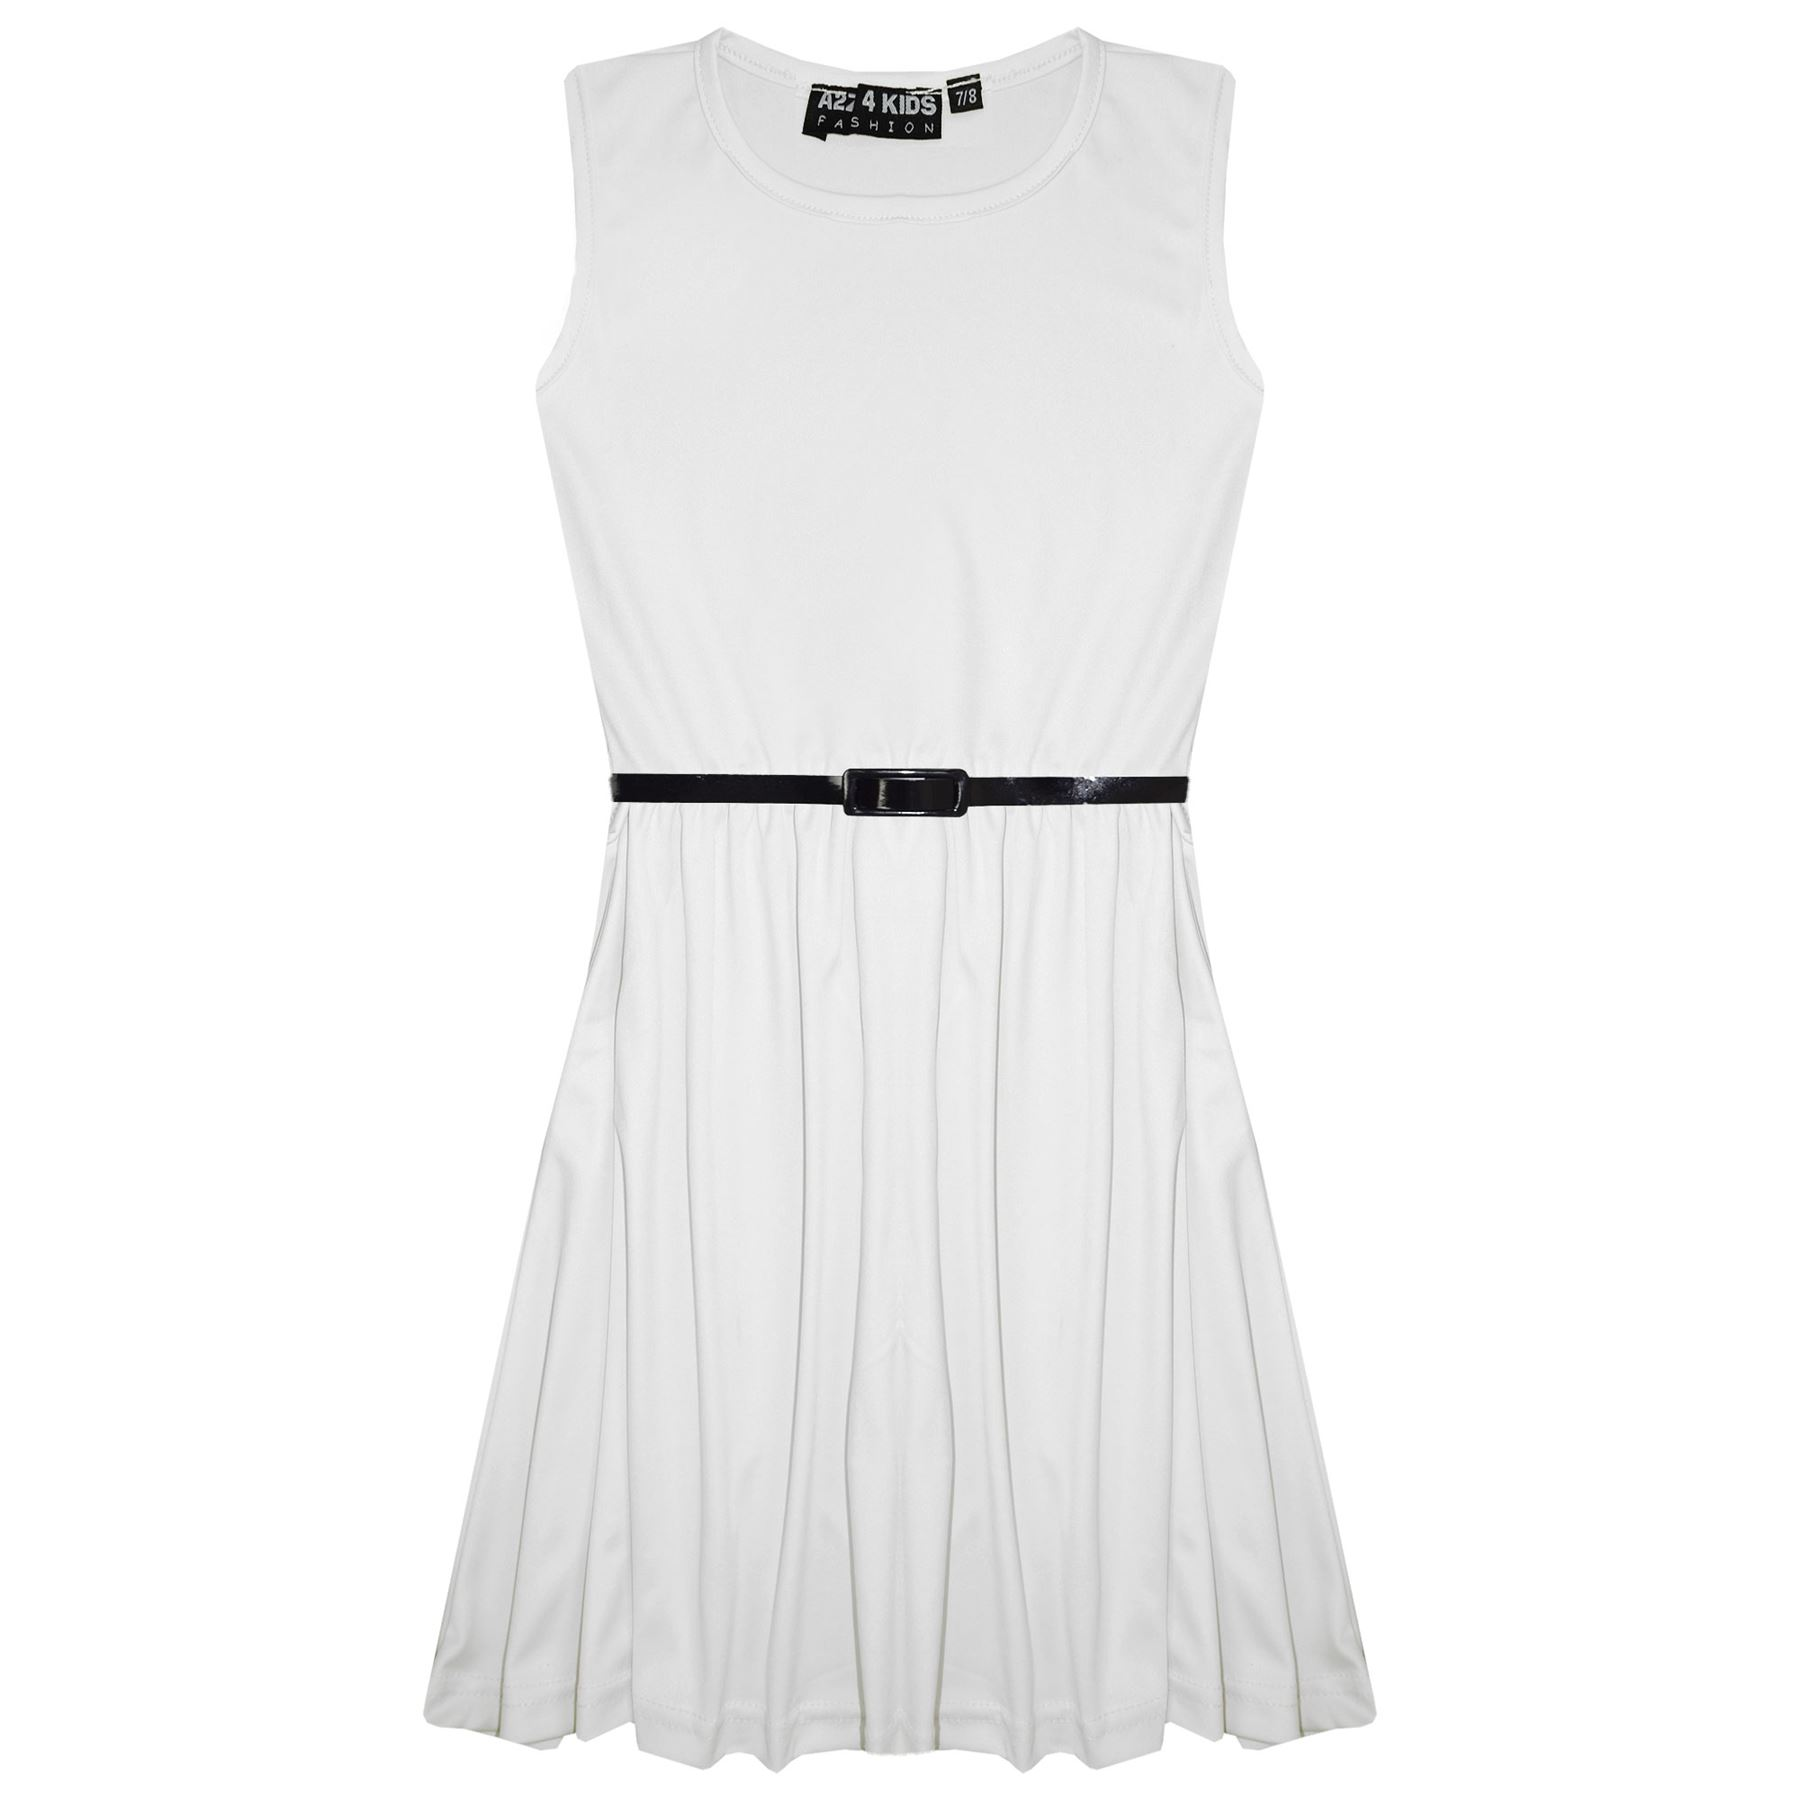 Girls-Skater-Dress-Kids-Party-Dresses-With-Free-Belt-5-6-7-8-9-10-11-12-13-Years miniatuur 98